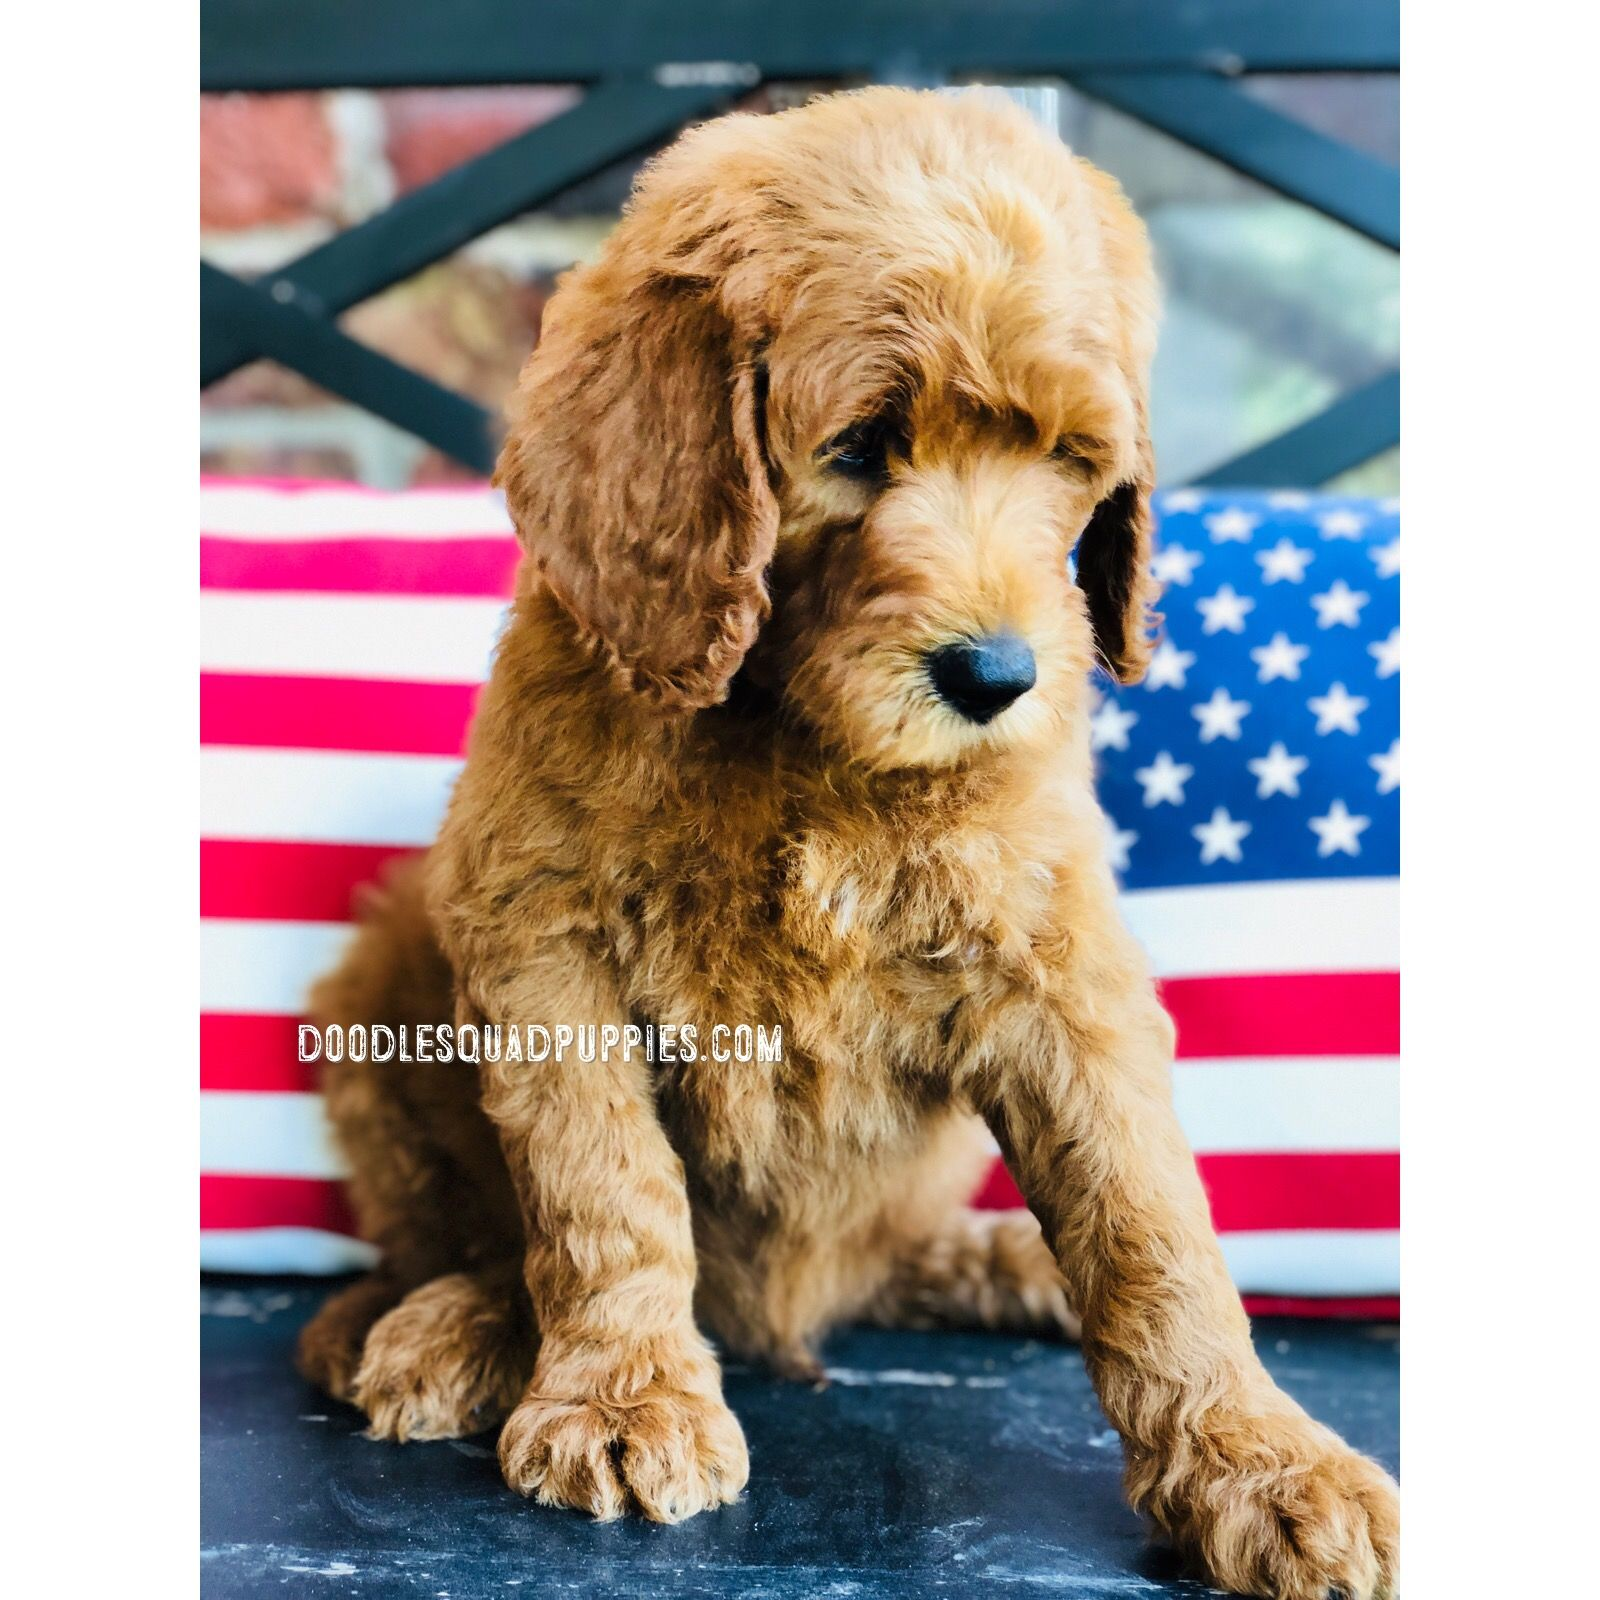 Goldendoodle Puppies With Images Goldendoodle Puppy Goldendoodle Puppy For Sale Puppies